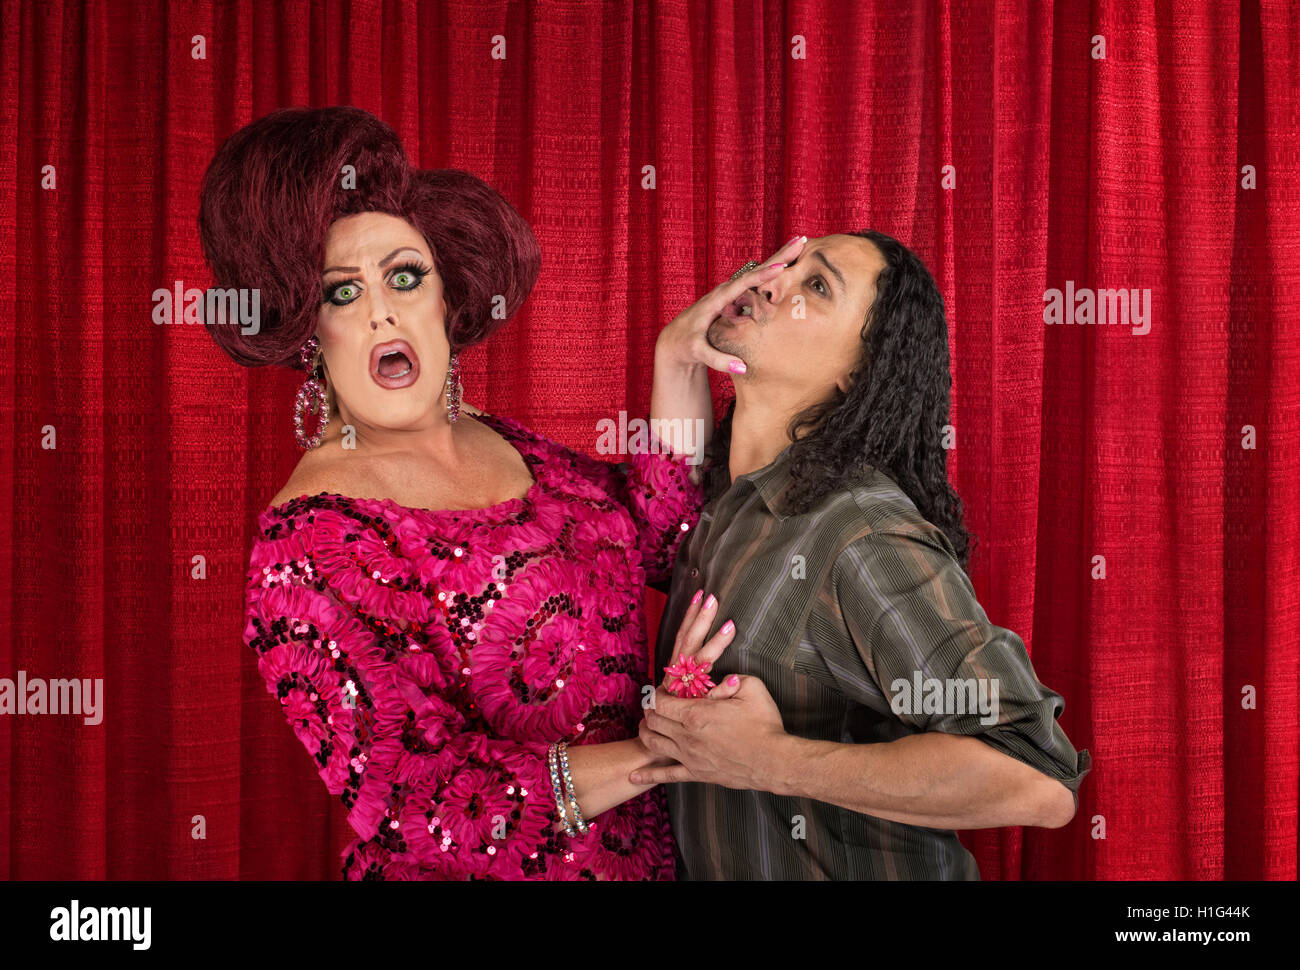 transvestite couple